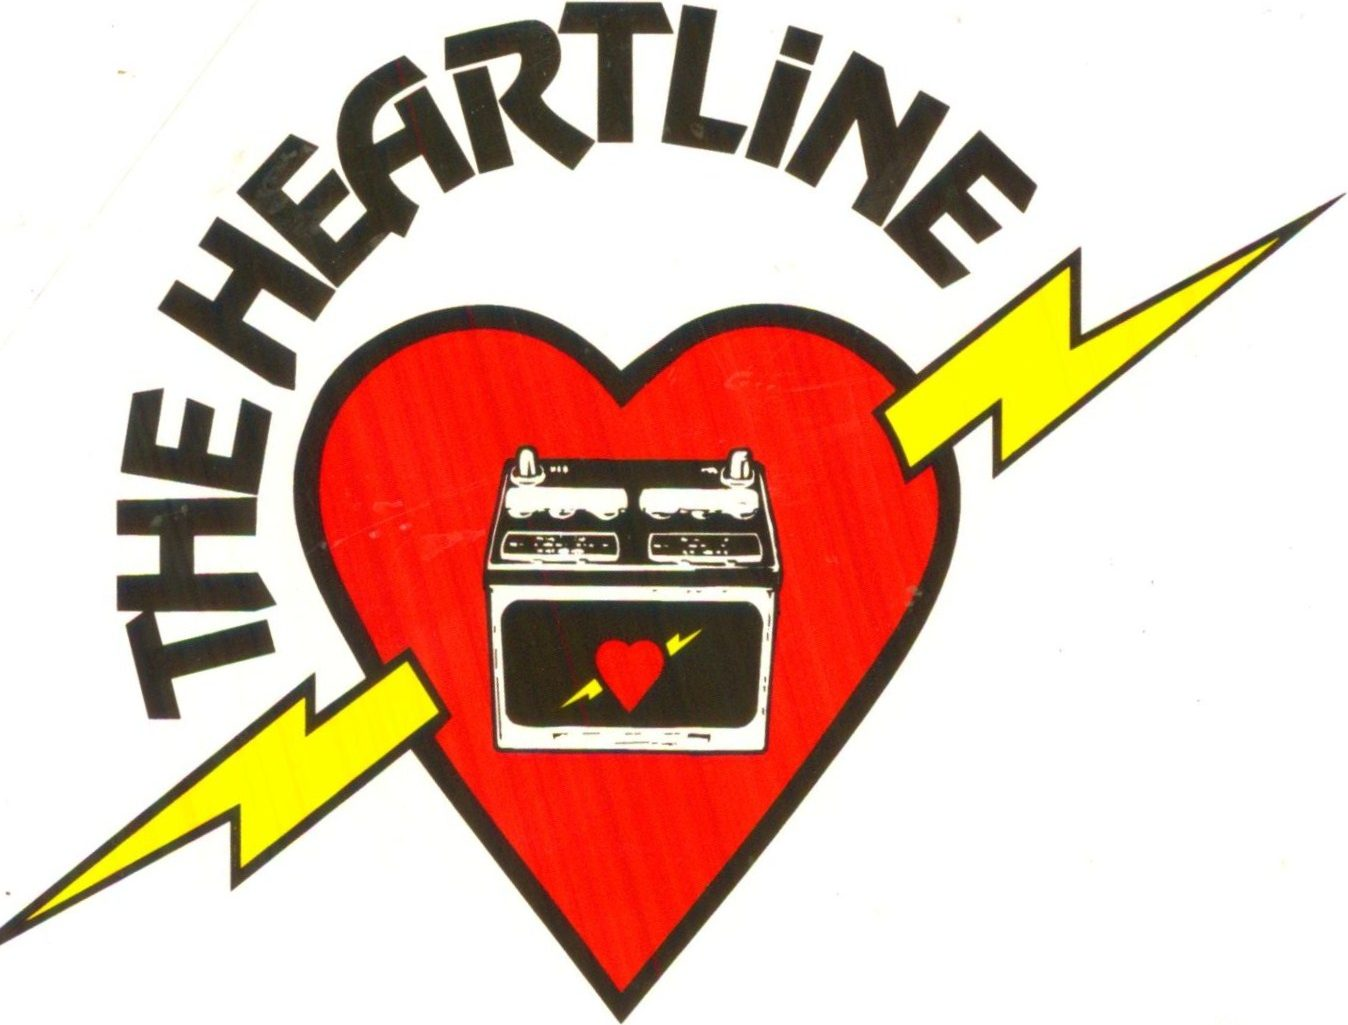 The Heartline